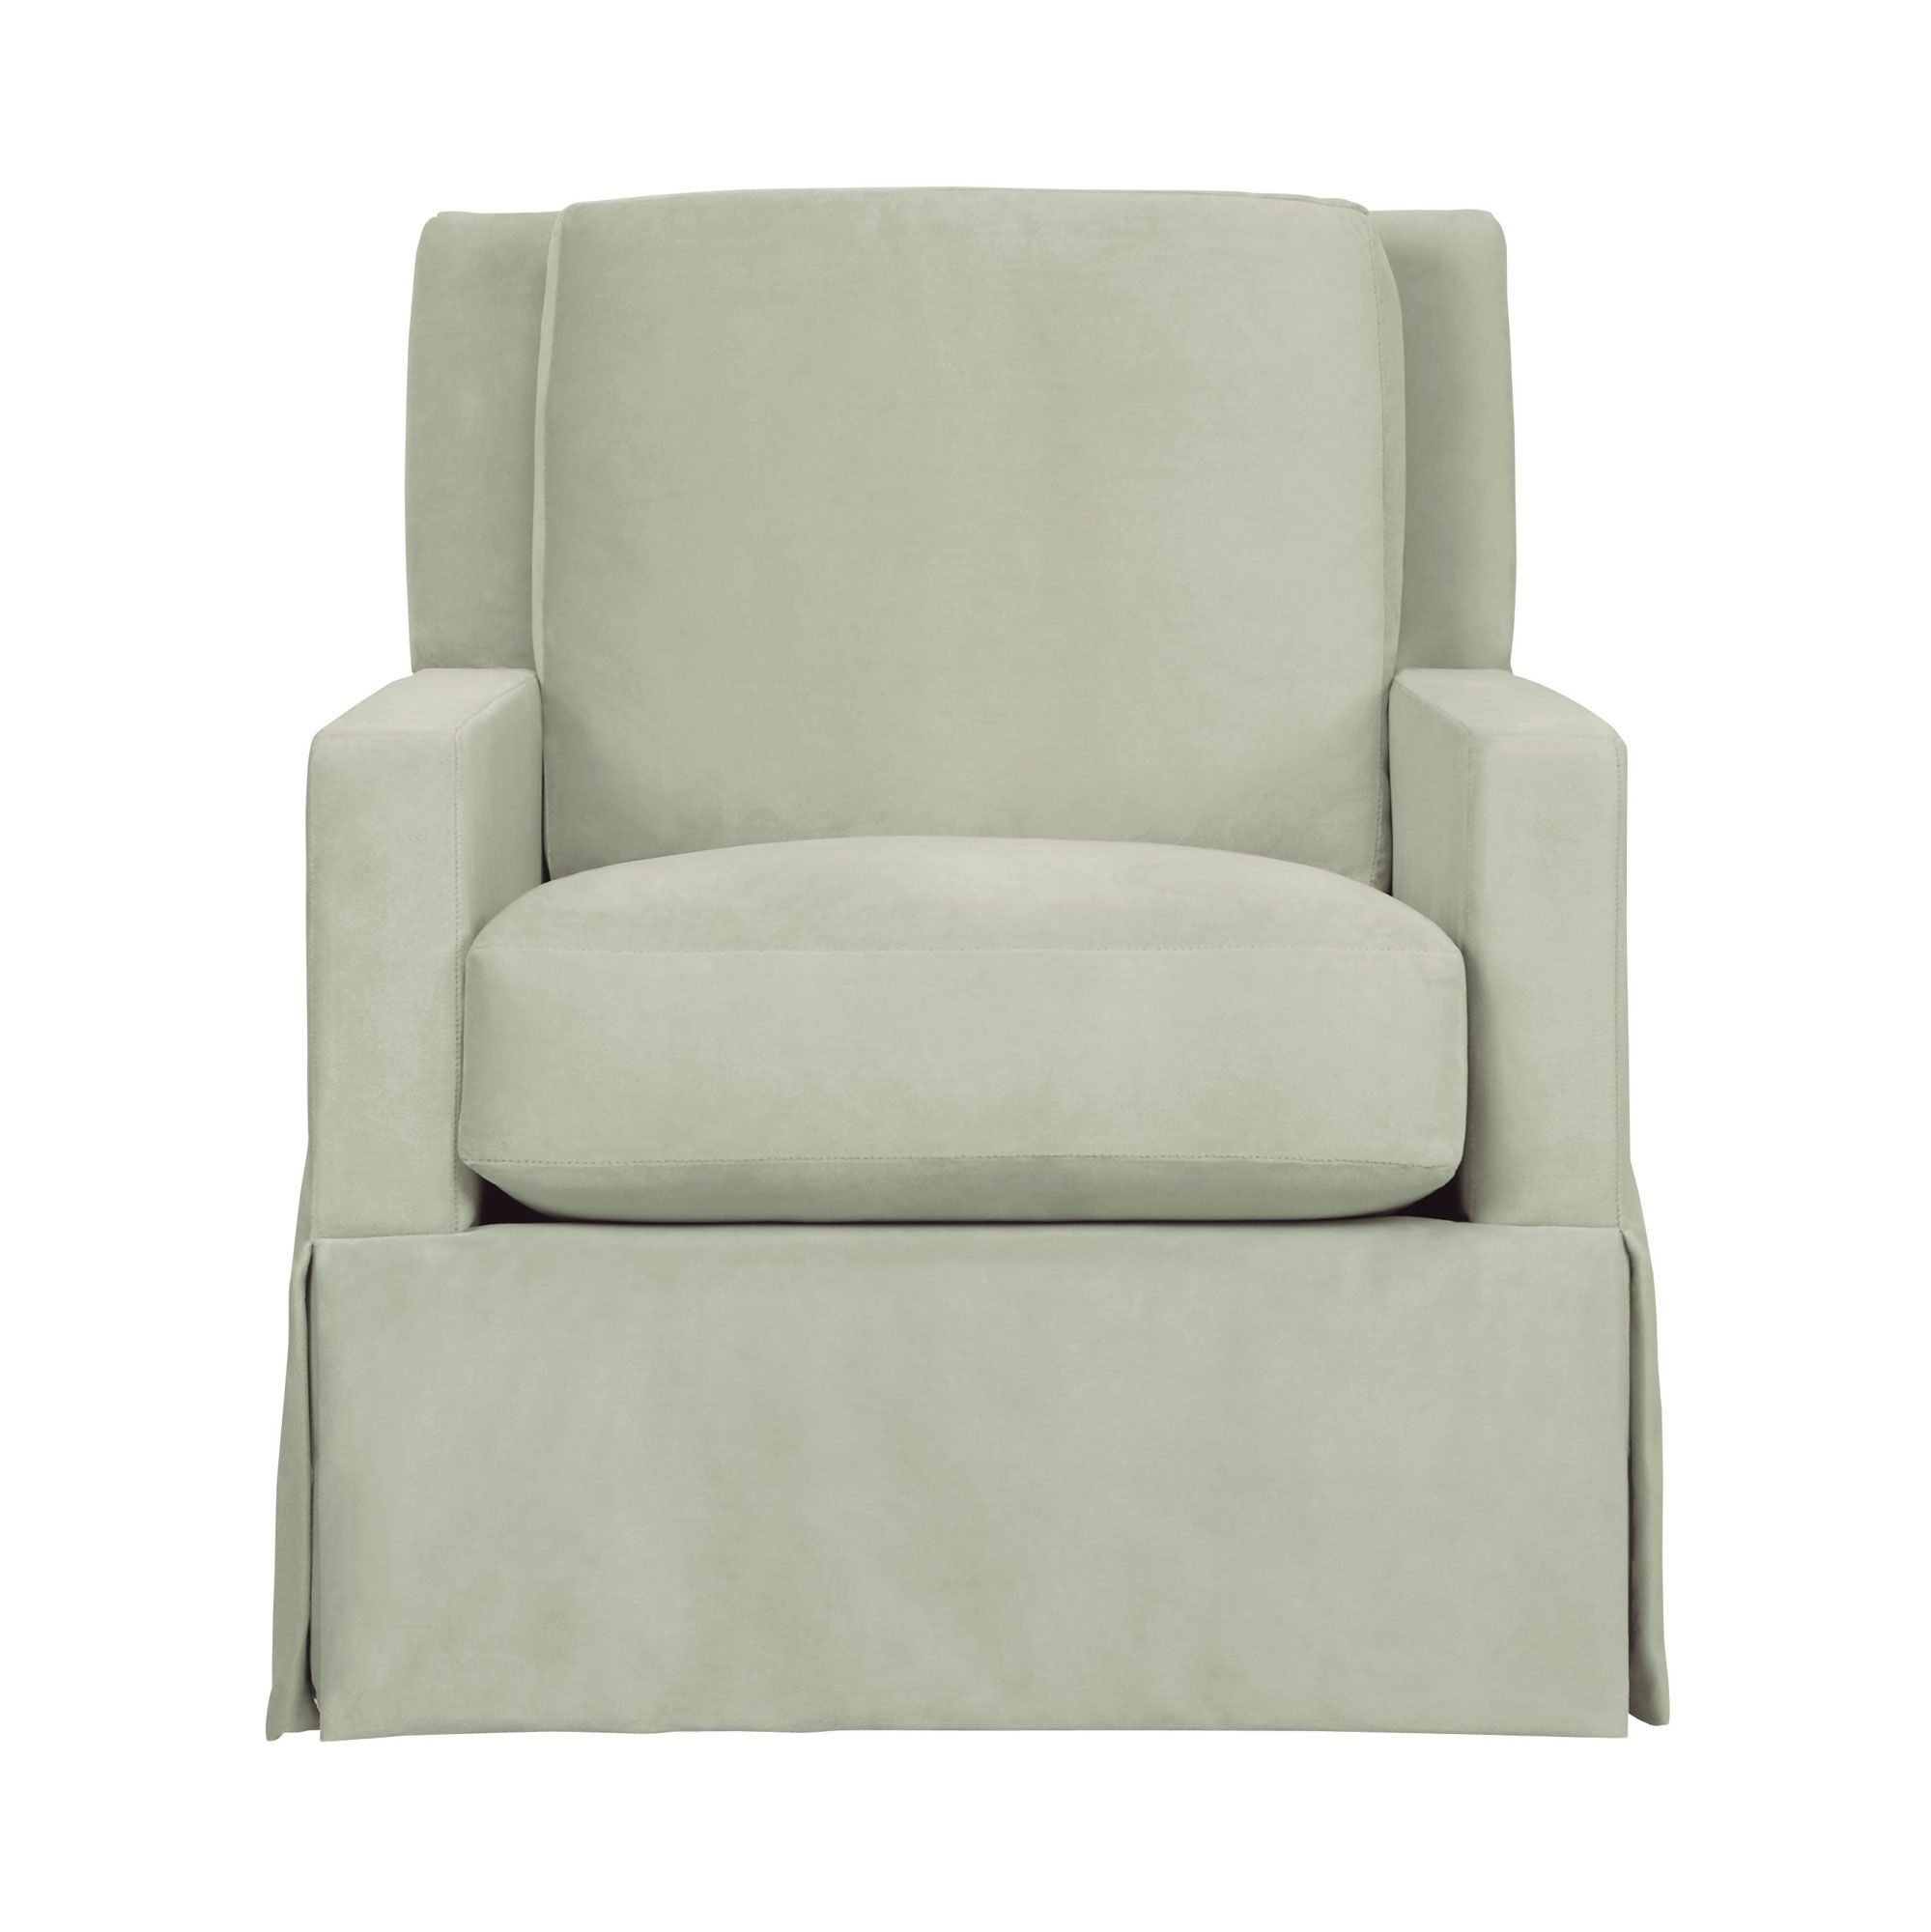 Patio Furniture Stores Franklin Tn: Hastings Swivel #Chair #Bernhardt #OfficeDesign #office